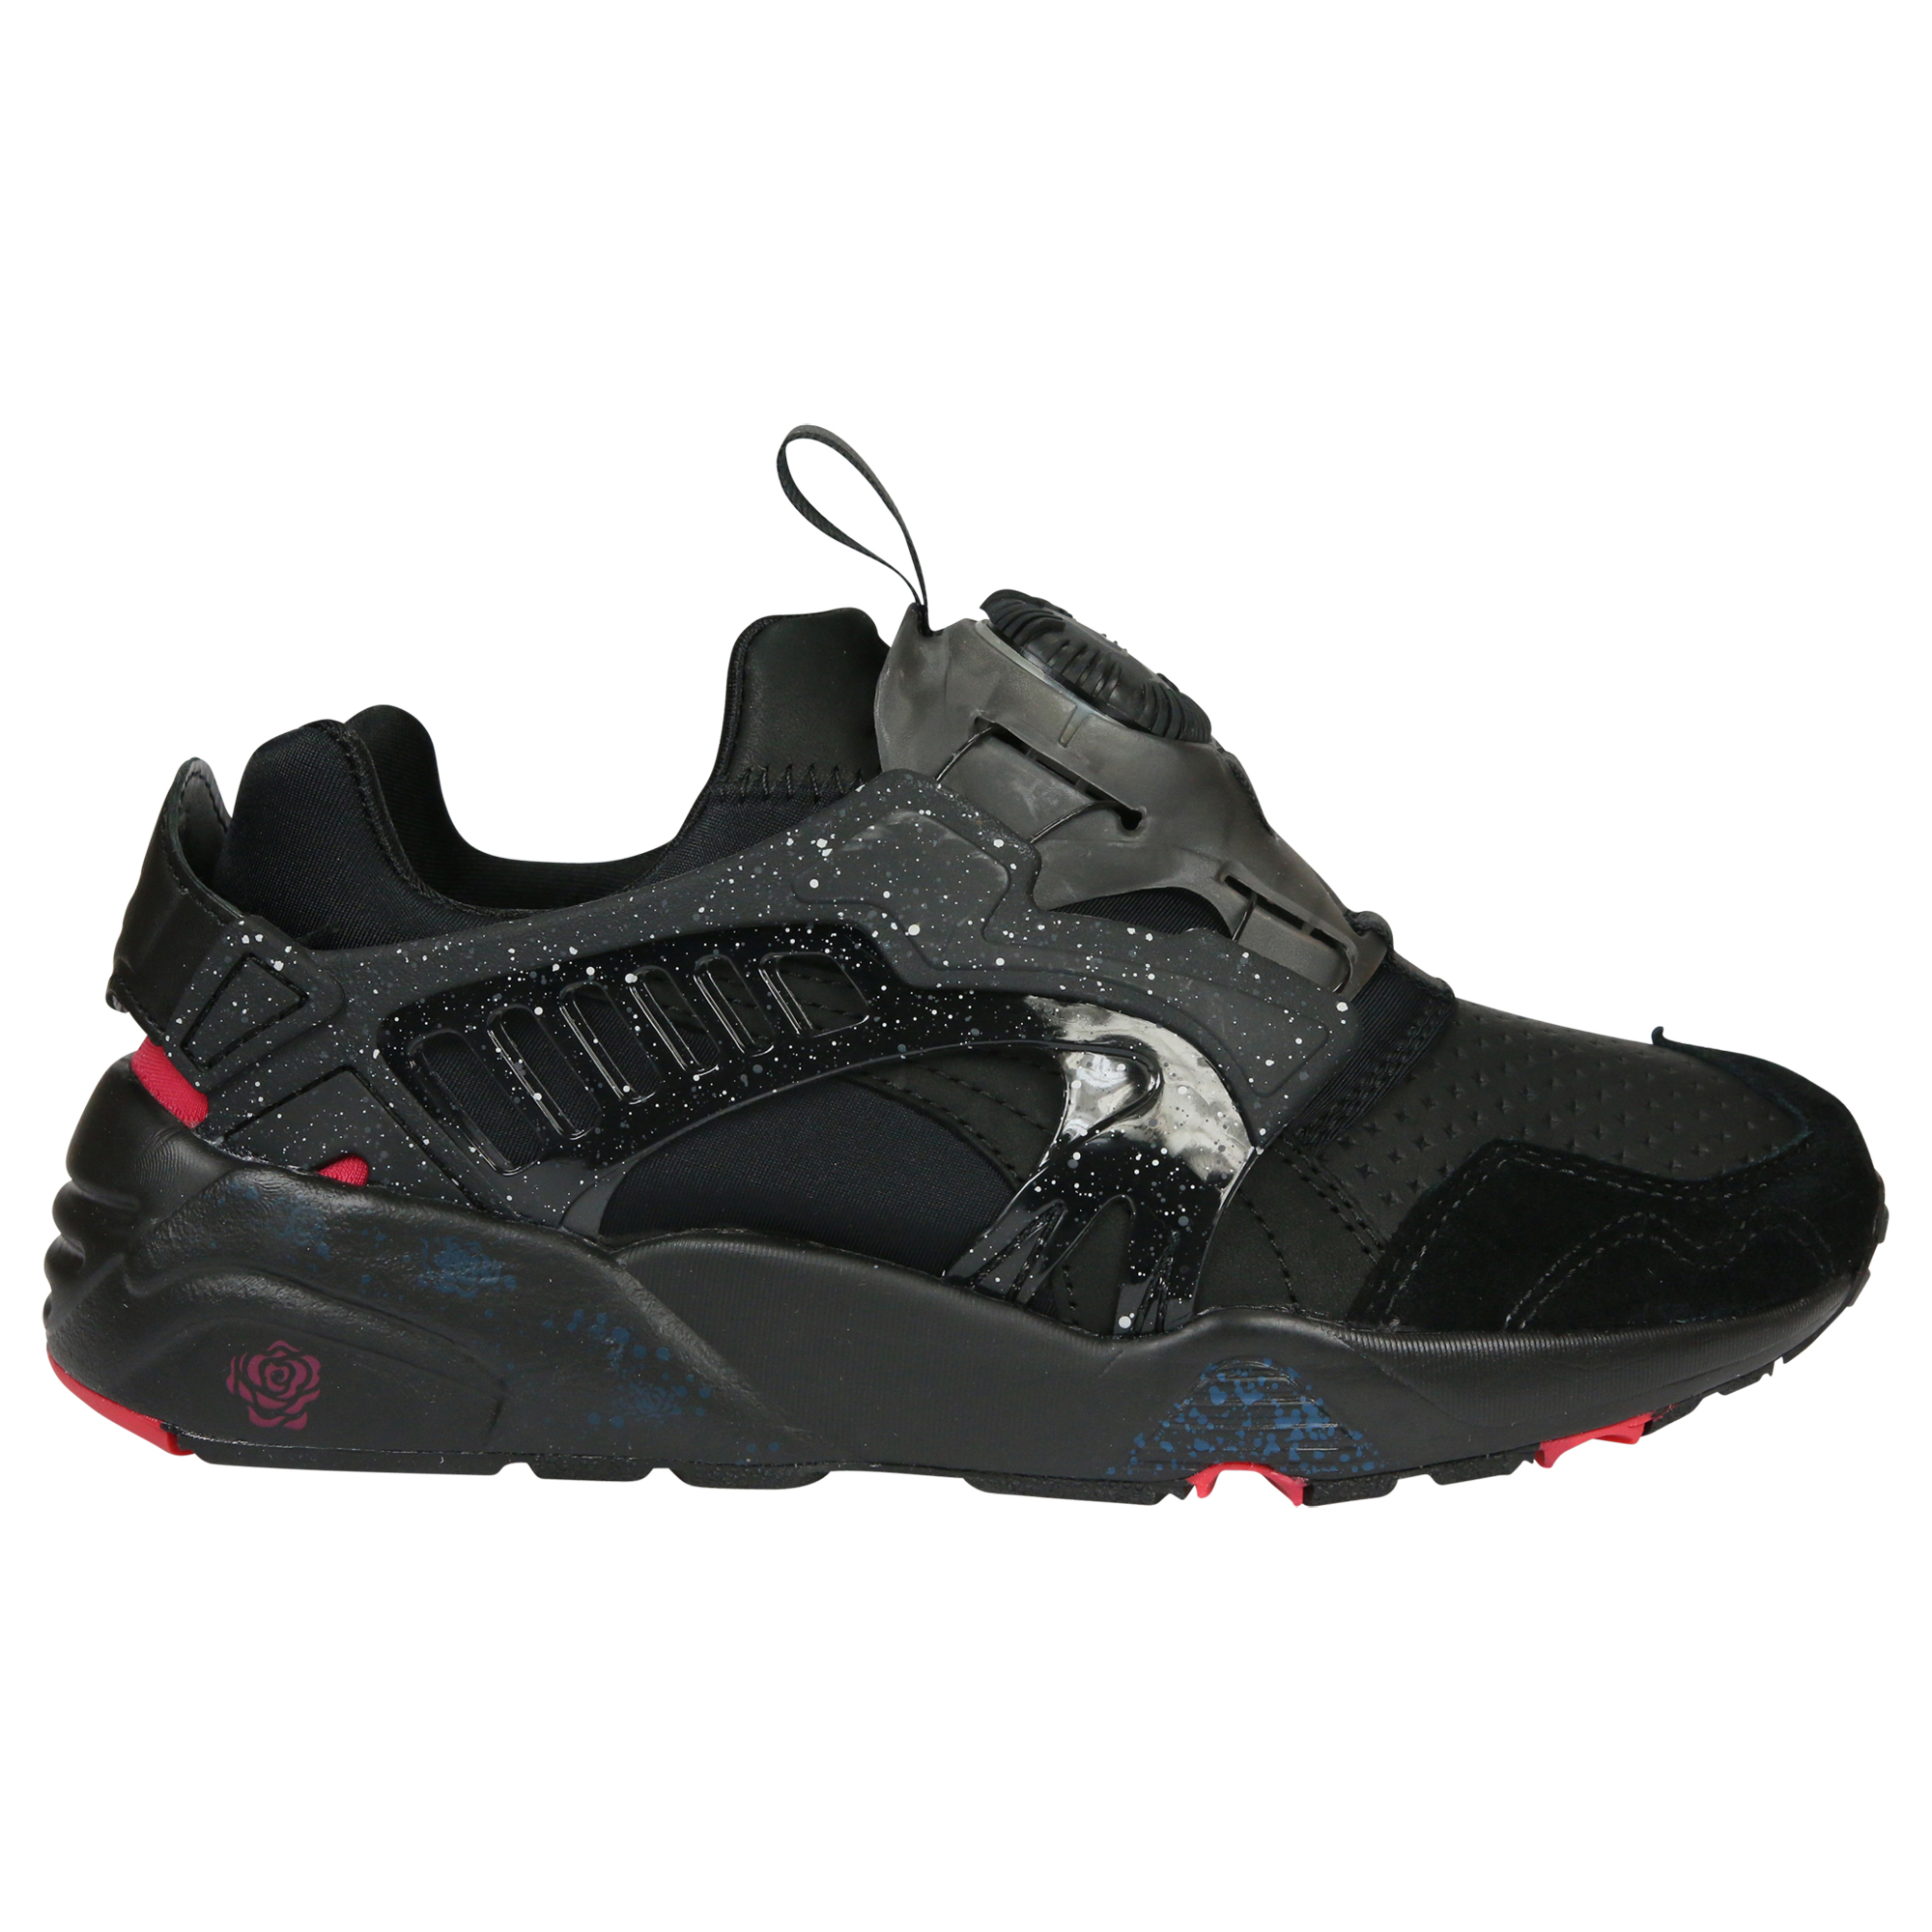 puma disc blaze schuhe turnschuhe sneaker herren damen verschiedene modelle ebay. Black Bedroom Furniture Sets. Home Design Ideas